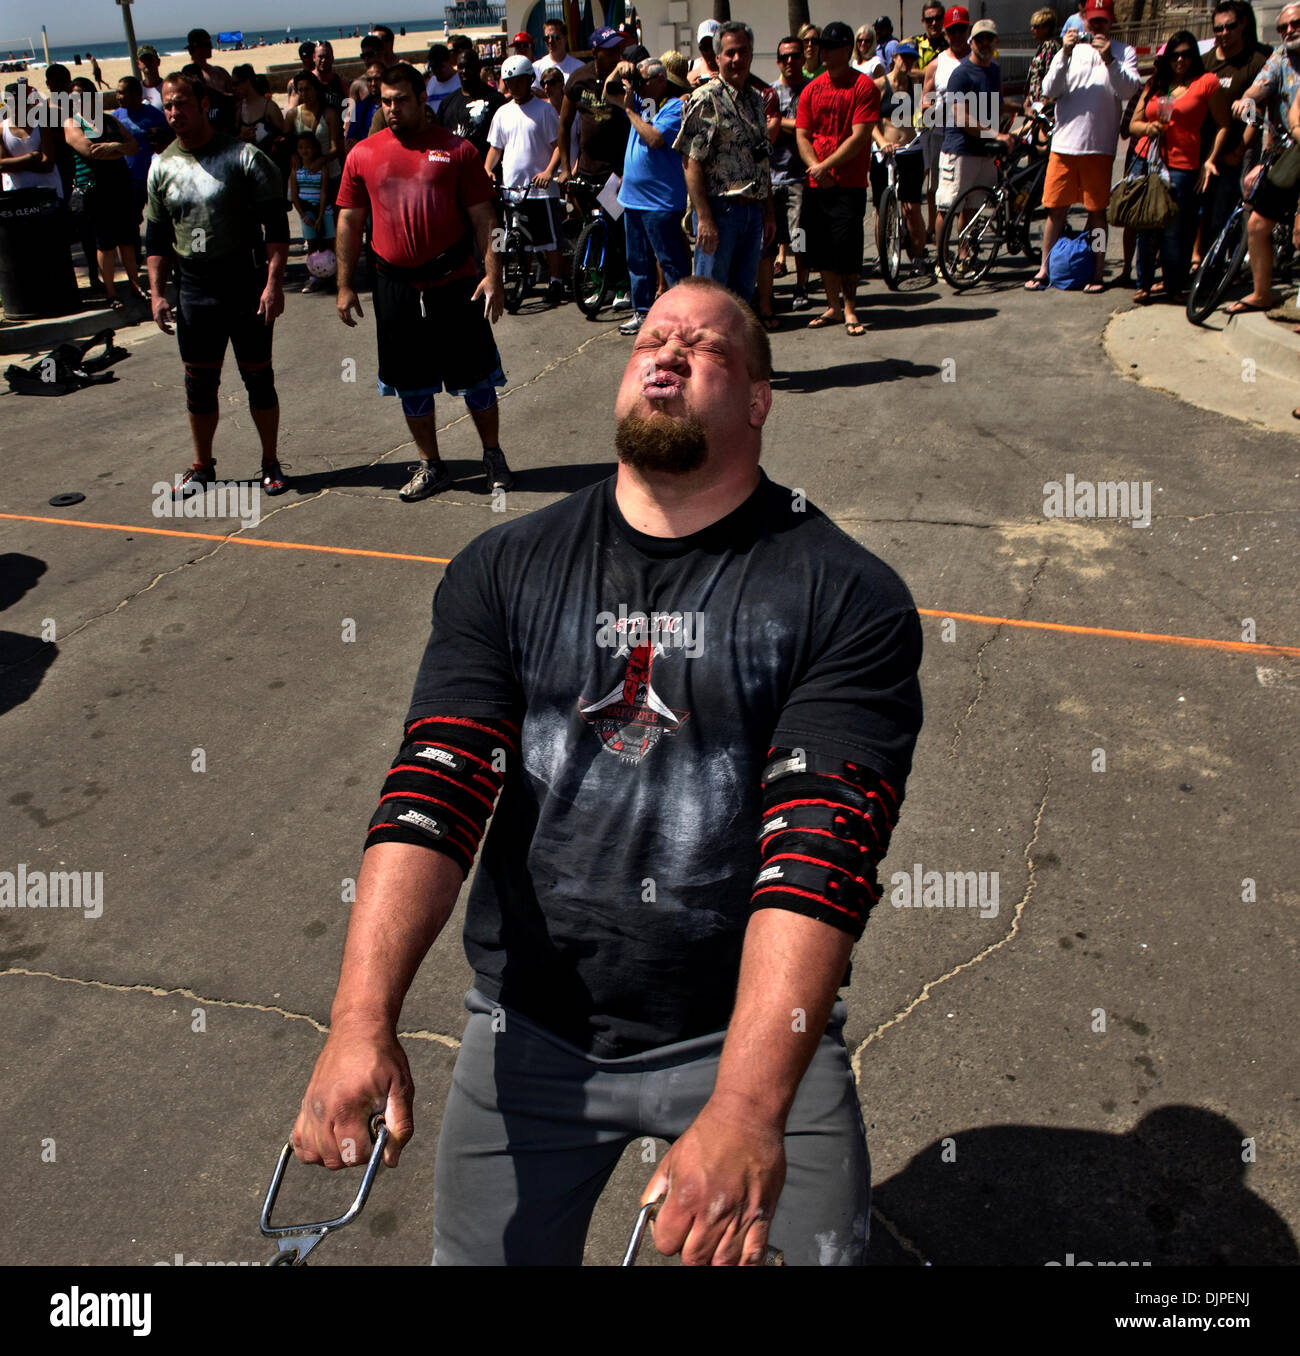 March 27, 2010 - Huntington Beach, California, USA -  CHARLES STUMPF competes in the sled pull, the last of the Stock Photo